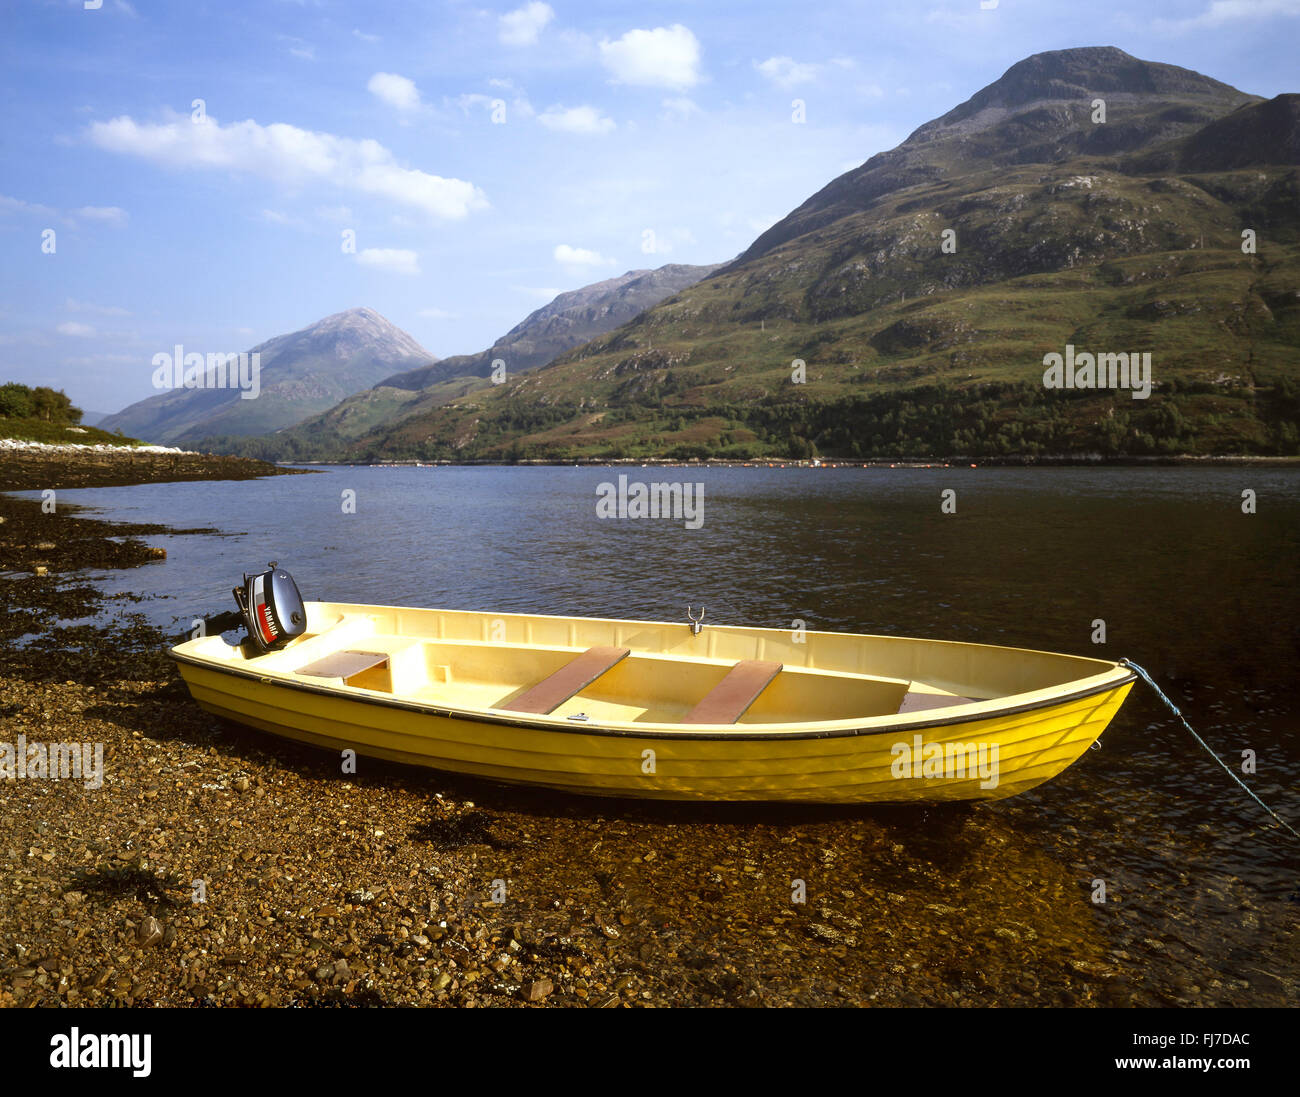 Wooden dingy on shore of Loch Leven, Highland, Scotland, United Kingdom - Stock Image